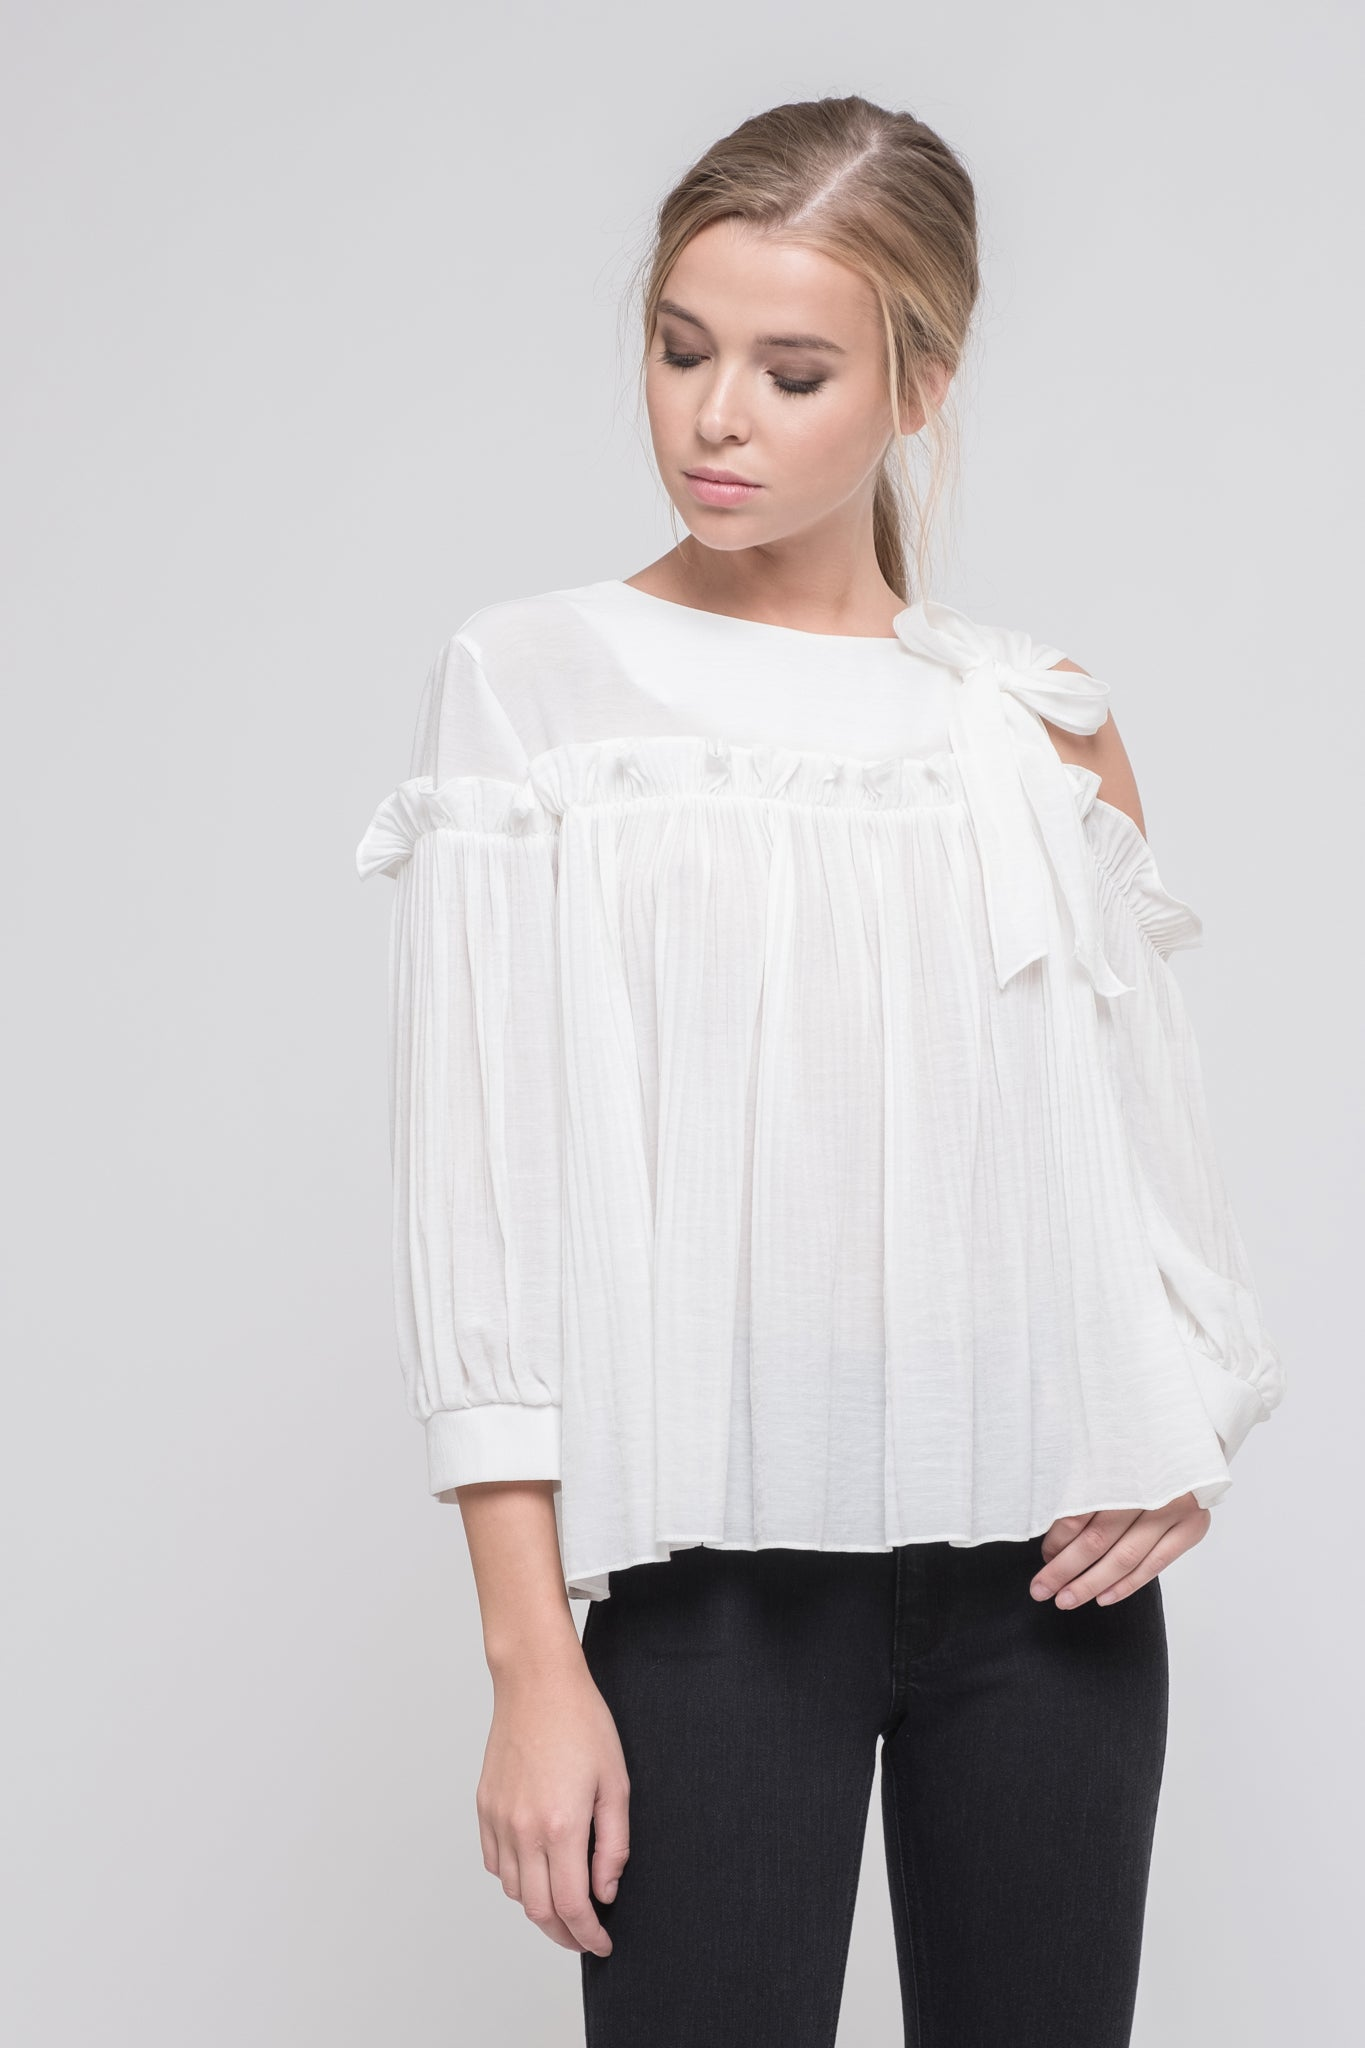 6b5bca6ef1e 3 4 SLEEVE SINGLE SIDE COLD SHOULDER TOP